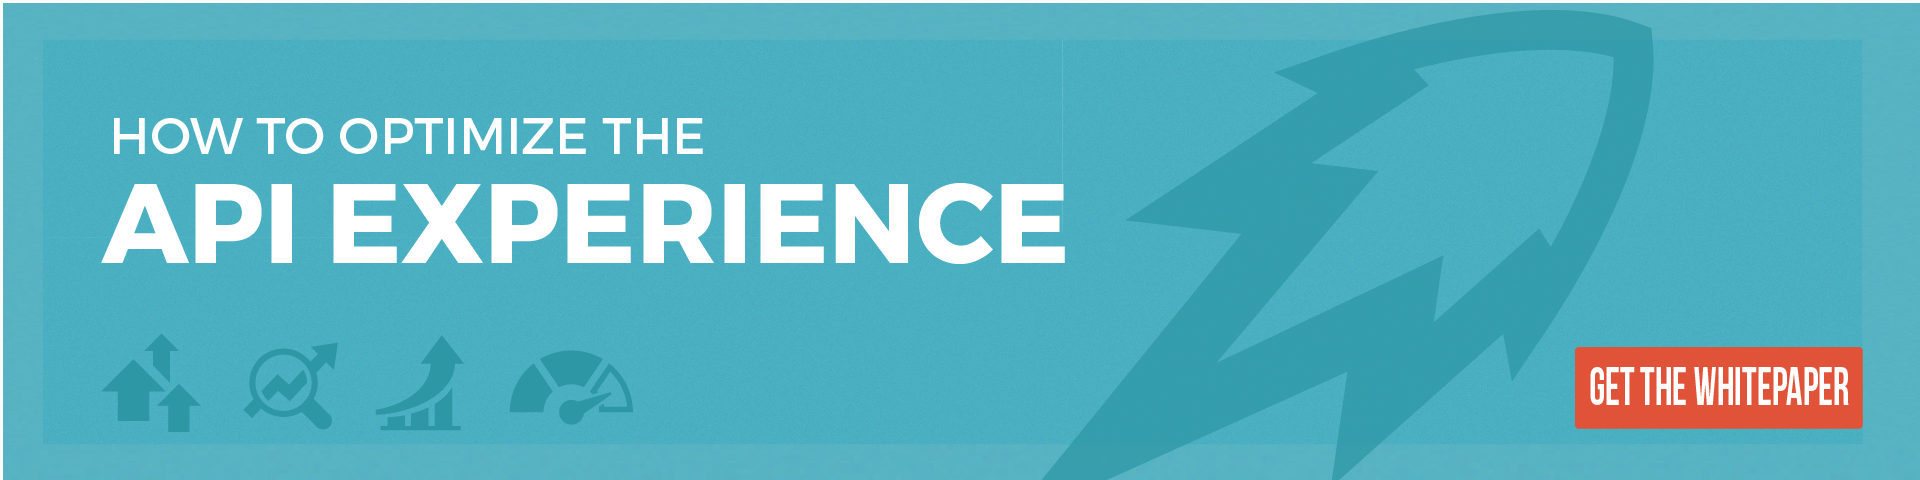 experience layer wp blog bannerai-01-1.png